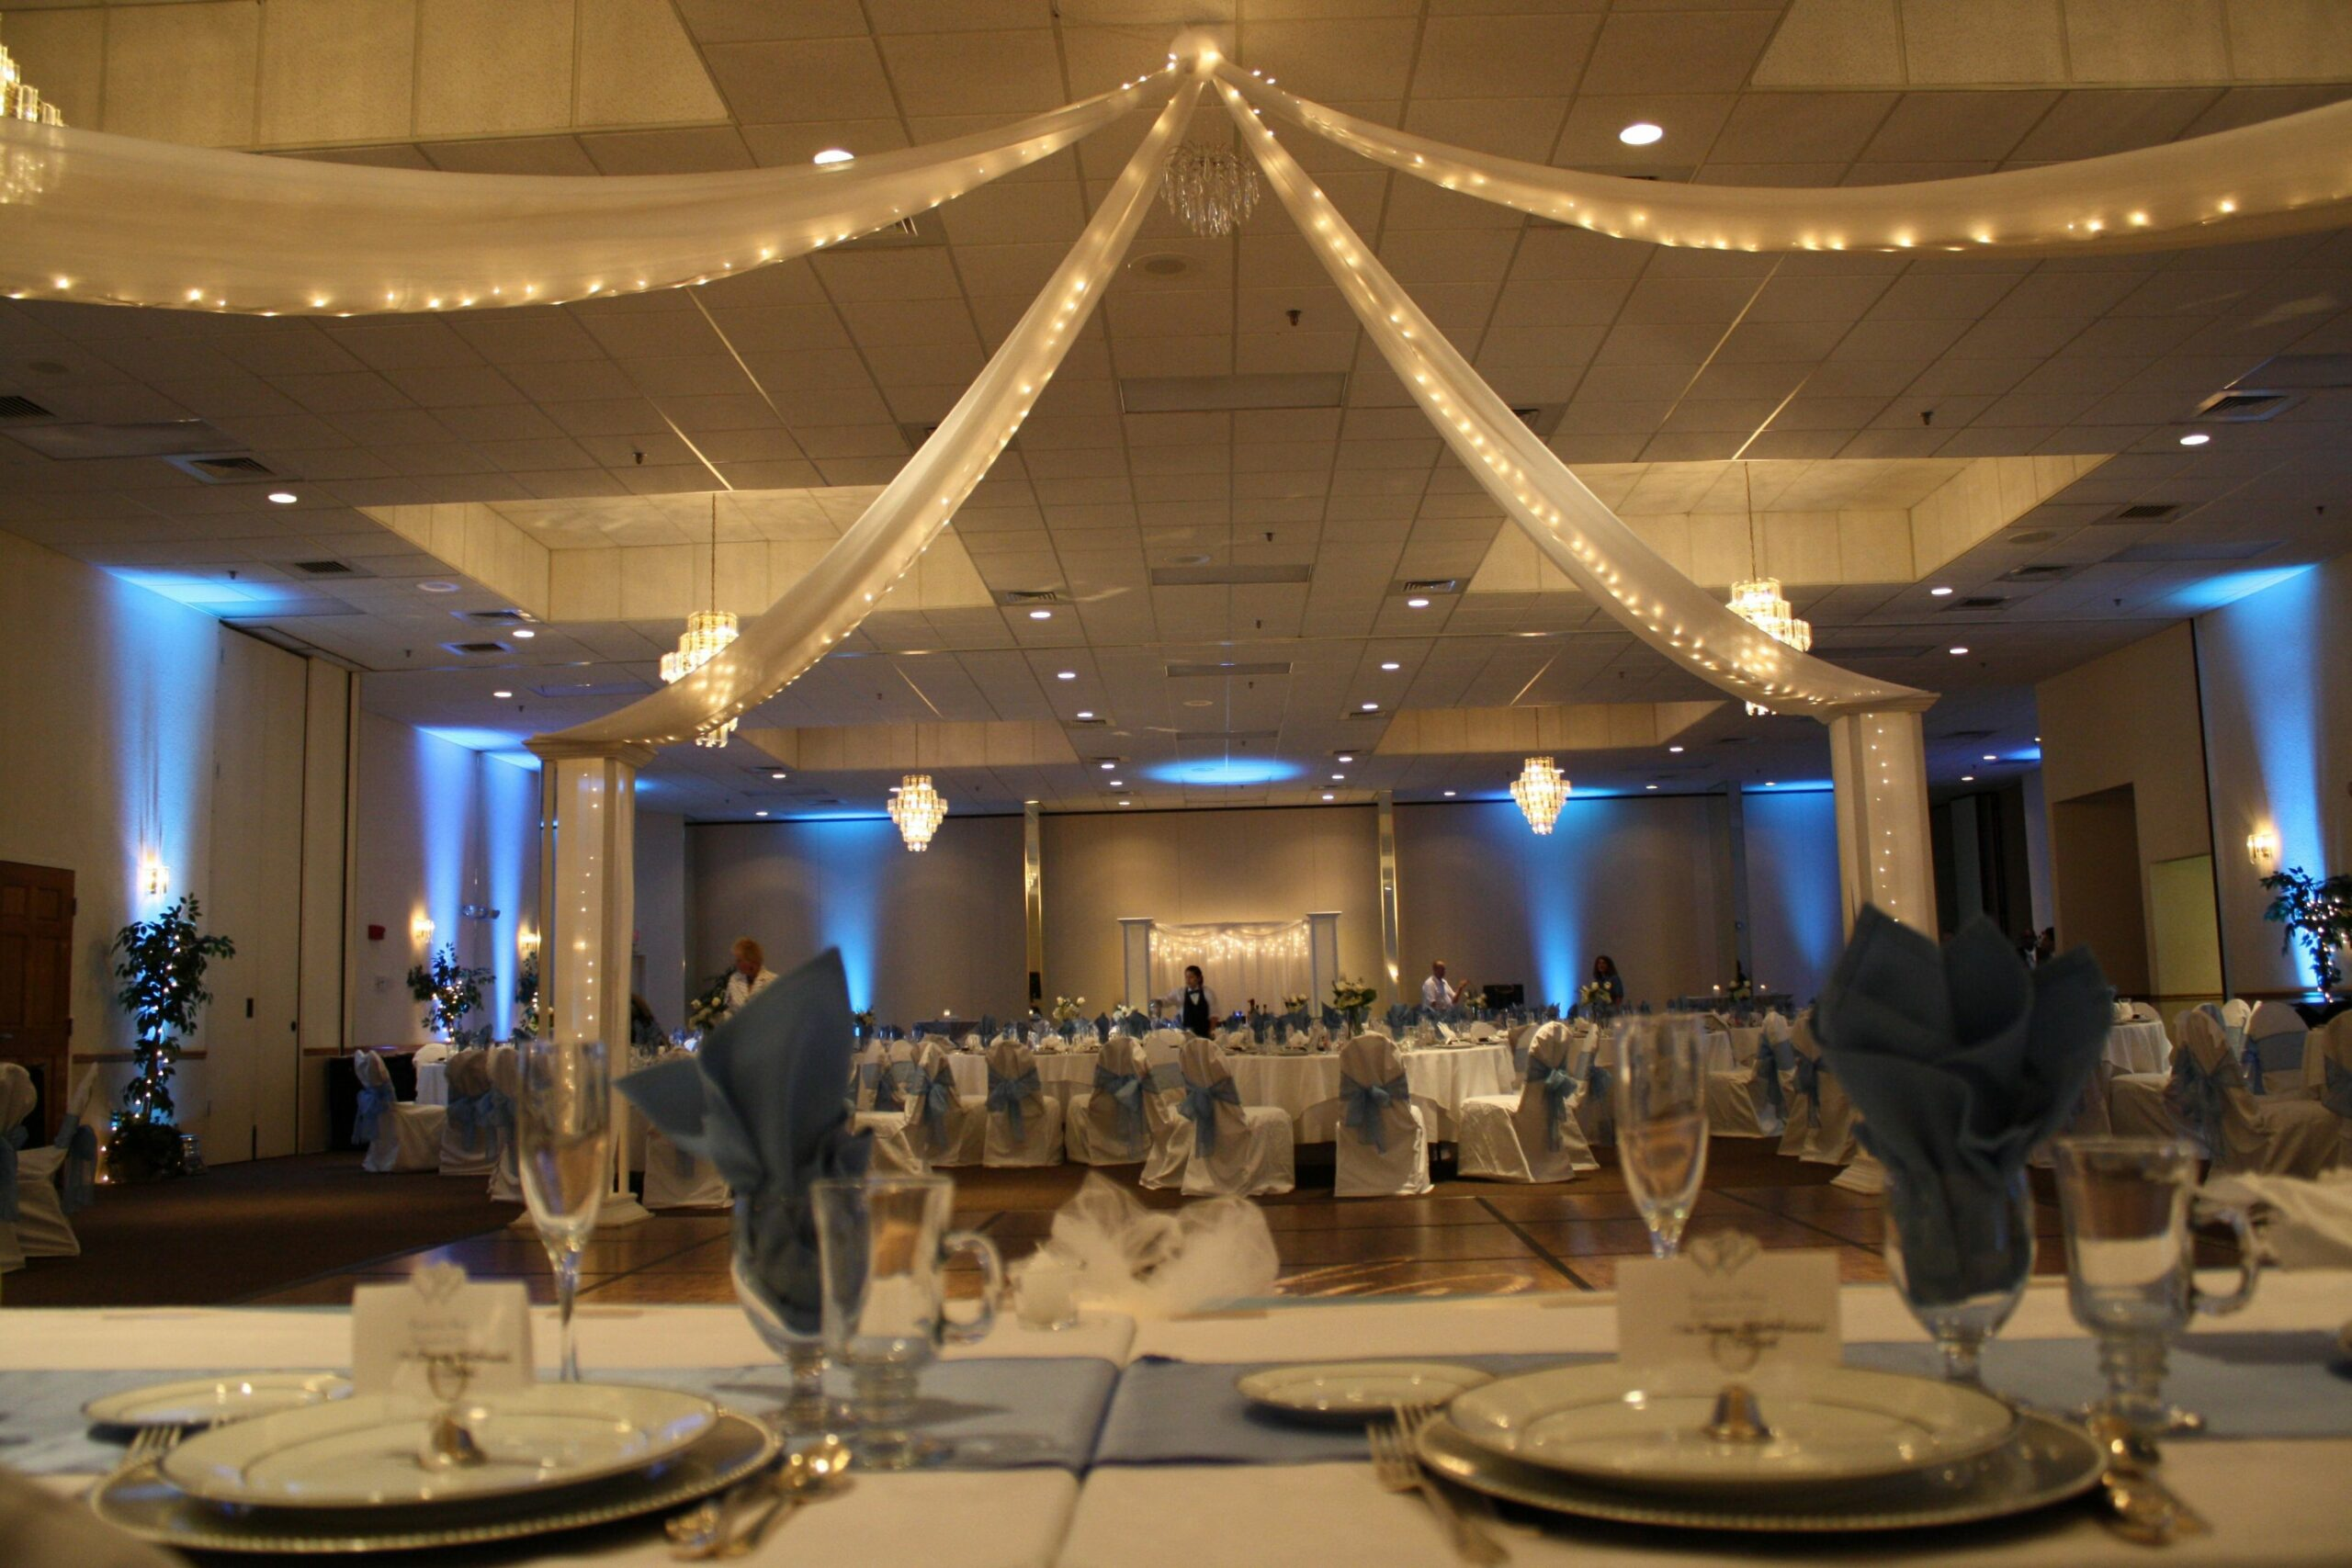 MJ Decorations (With images) | Wedding party planning, Wedding ..